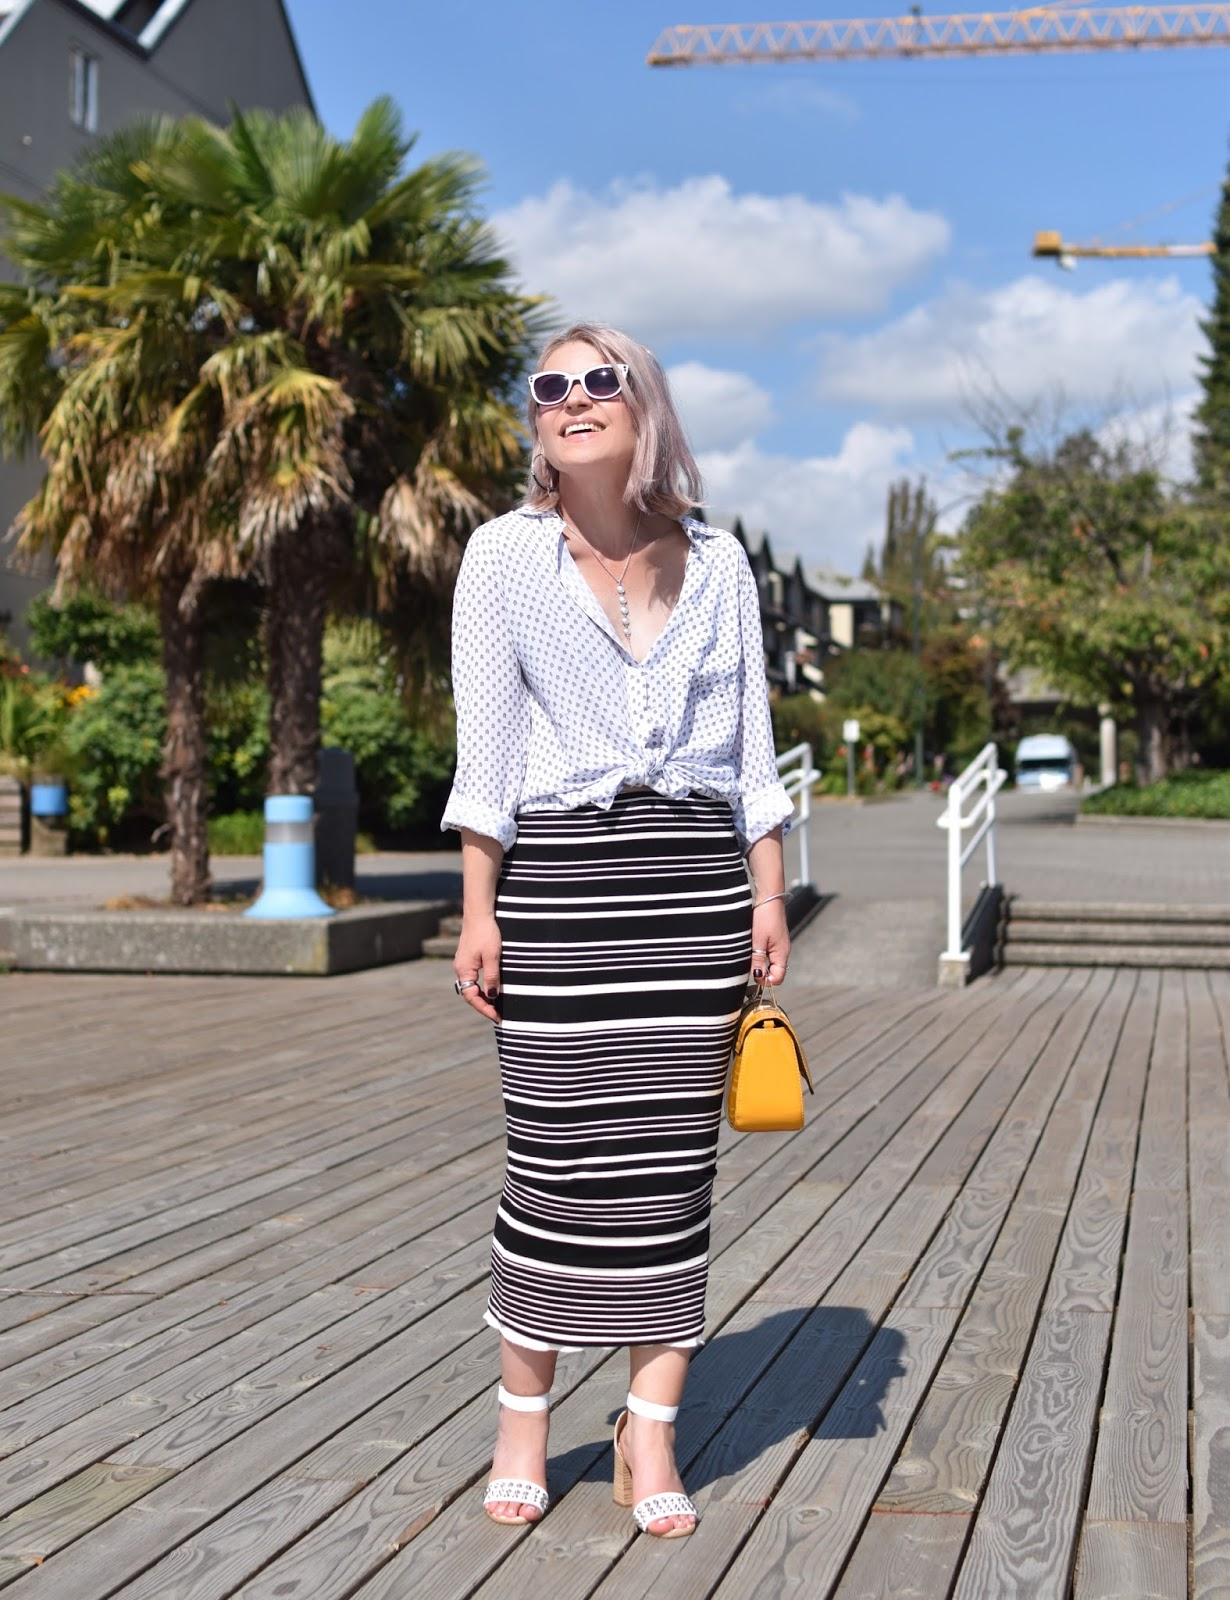 Monika Faulkner outfit inspiration - styling a striped pencil skirt with a patterned shirt and studded ankle-strap sandals